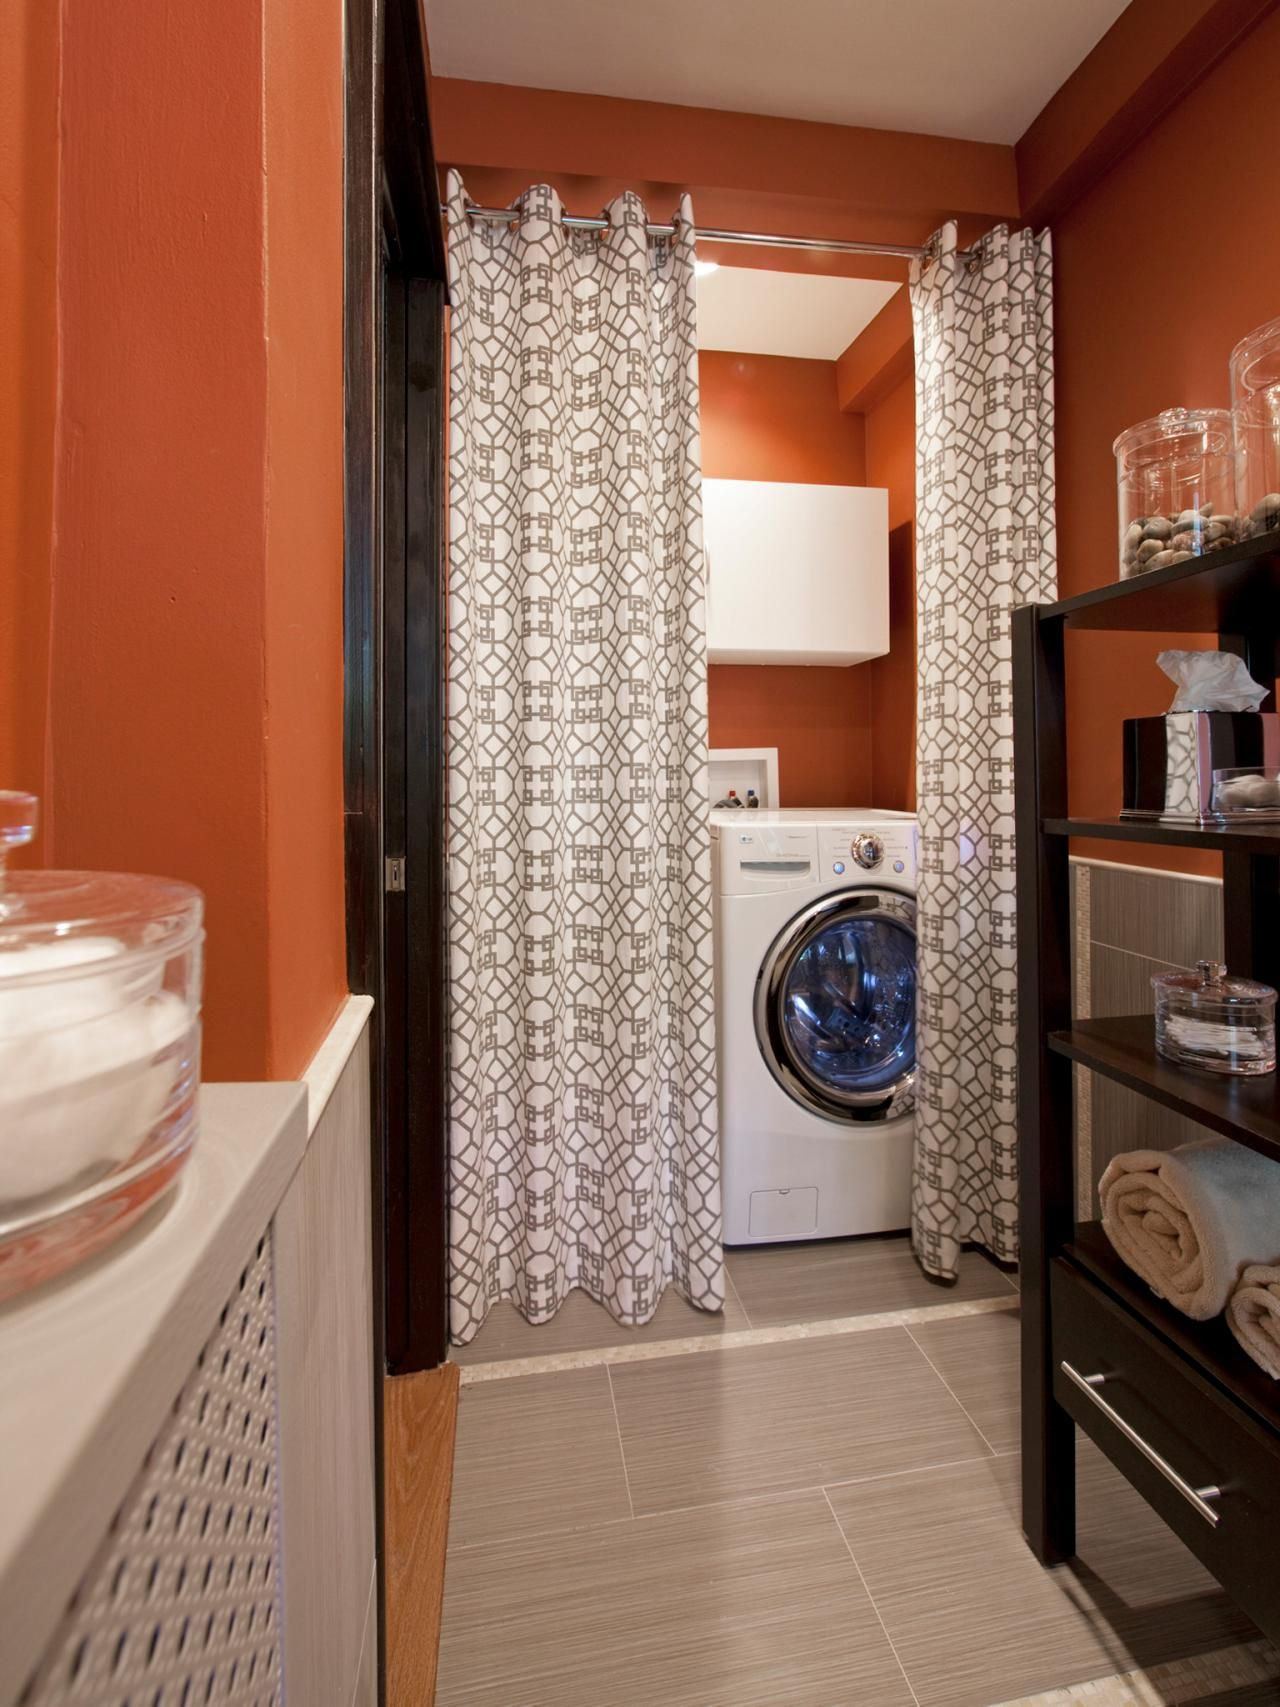 8 tidy laundry rooms that make washday fun home remodeling ideas for basements home theaters more hgtv